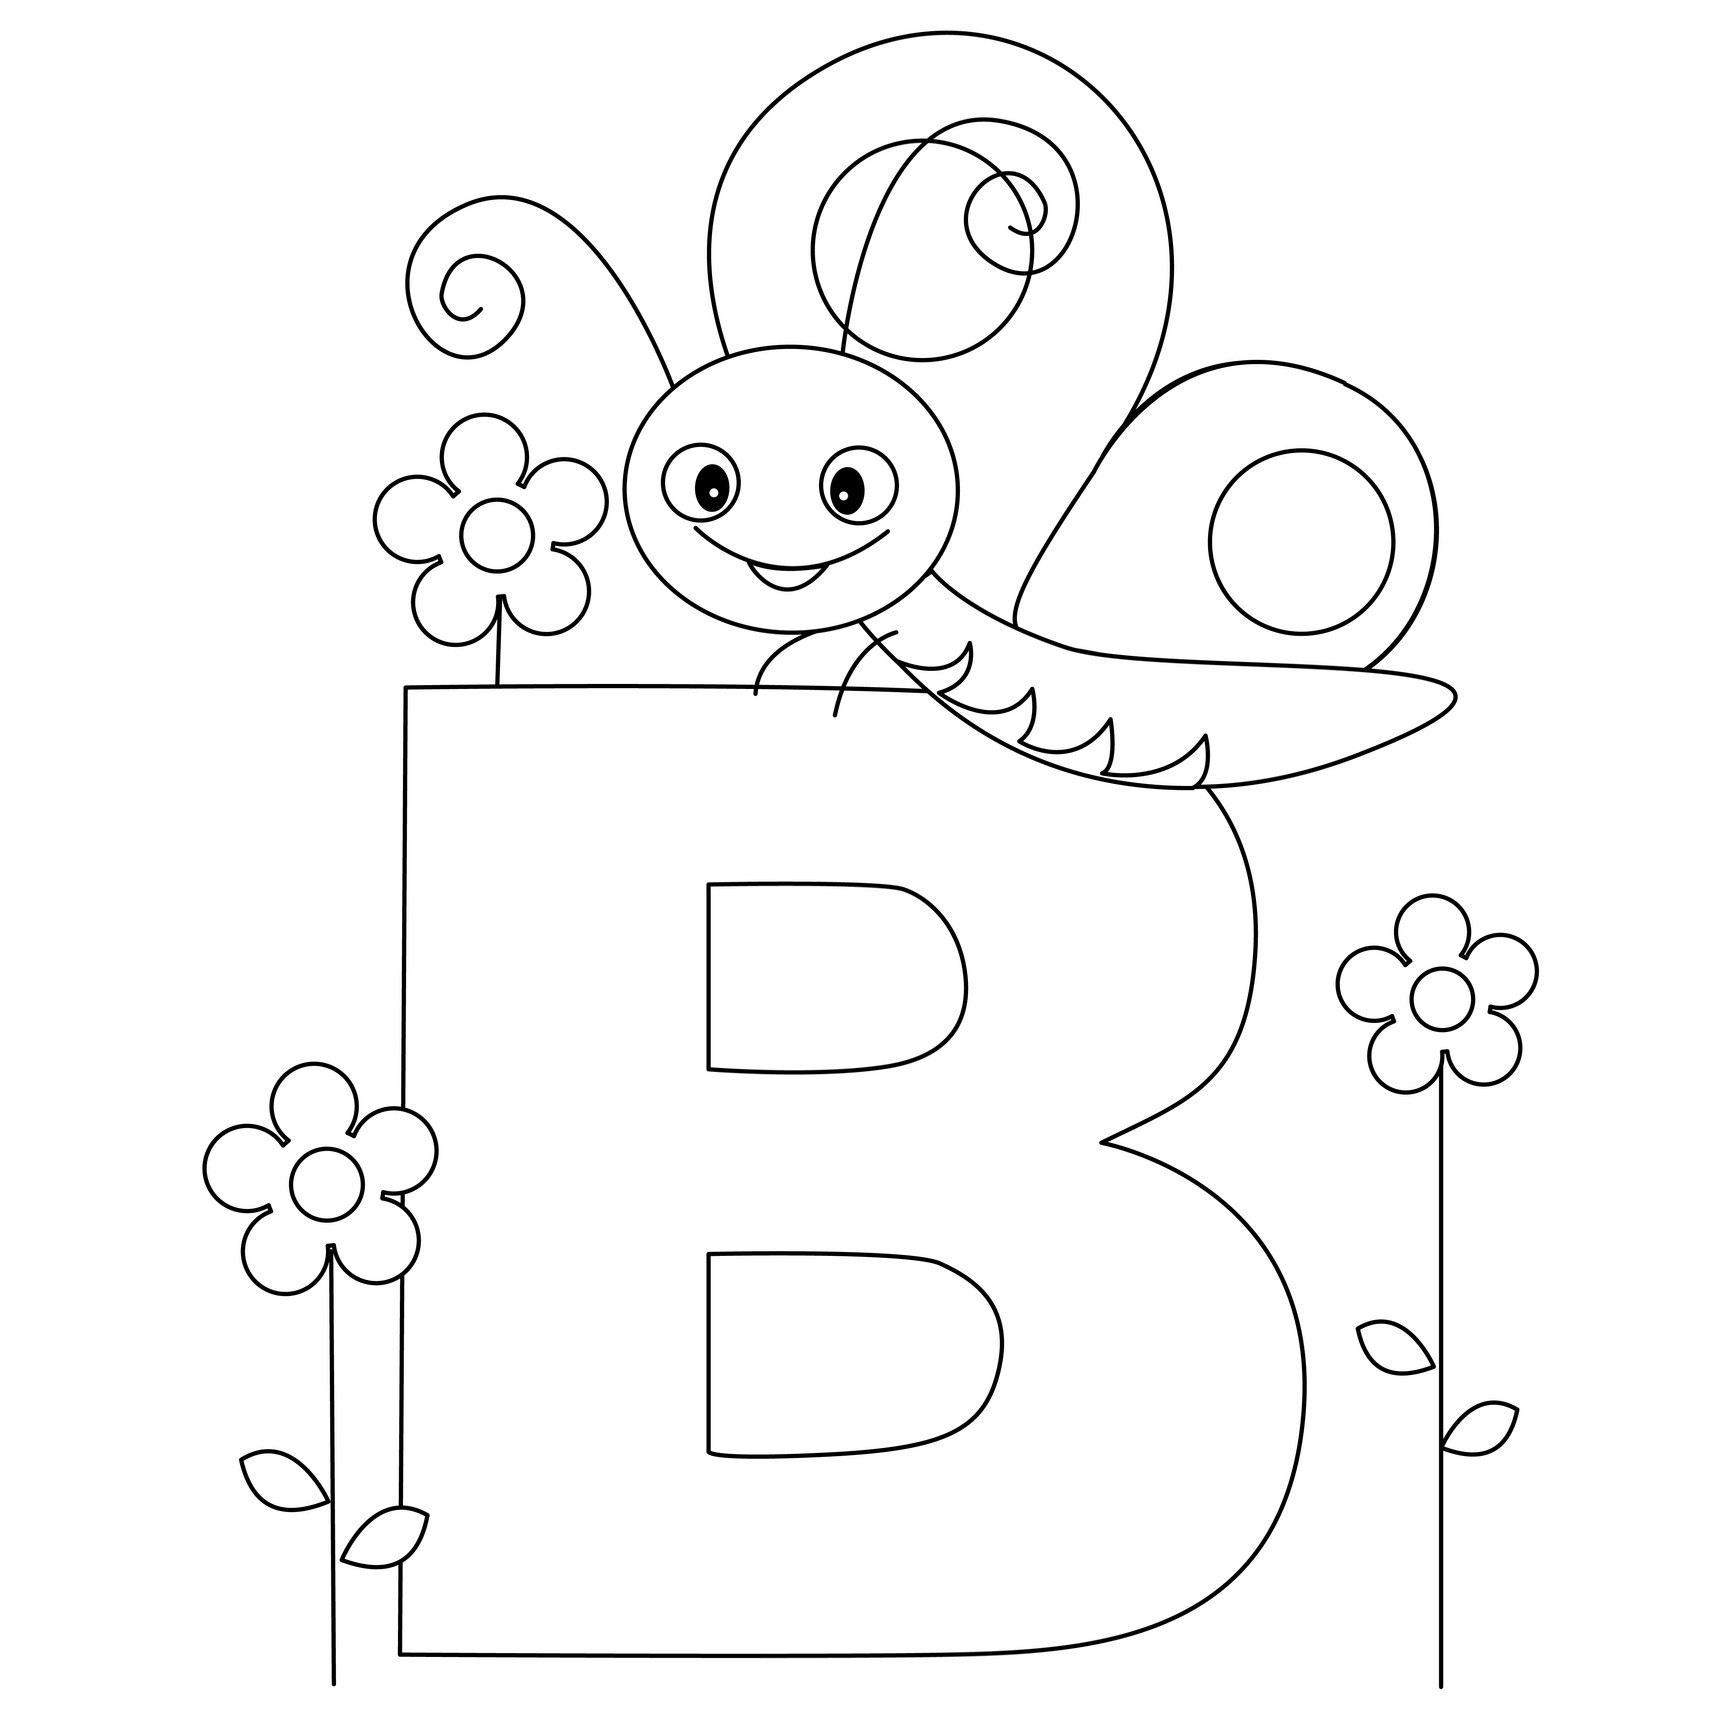 free printable alphabet coloring pages for kids best coloring pages for kids. Black Bedroom Furniture Sets. Home Design Ideas